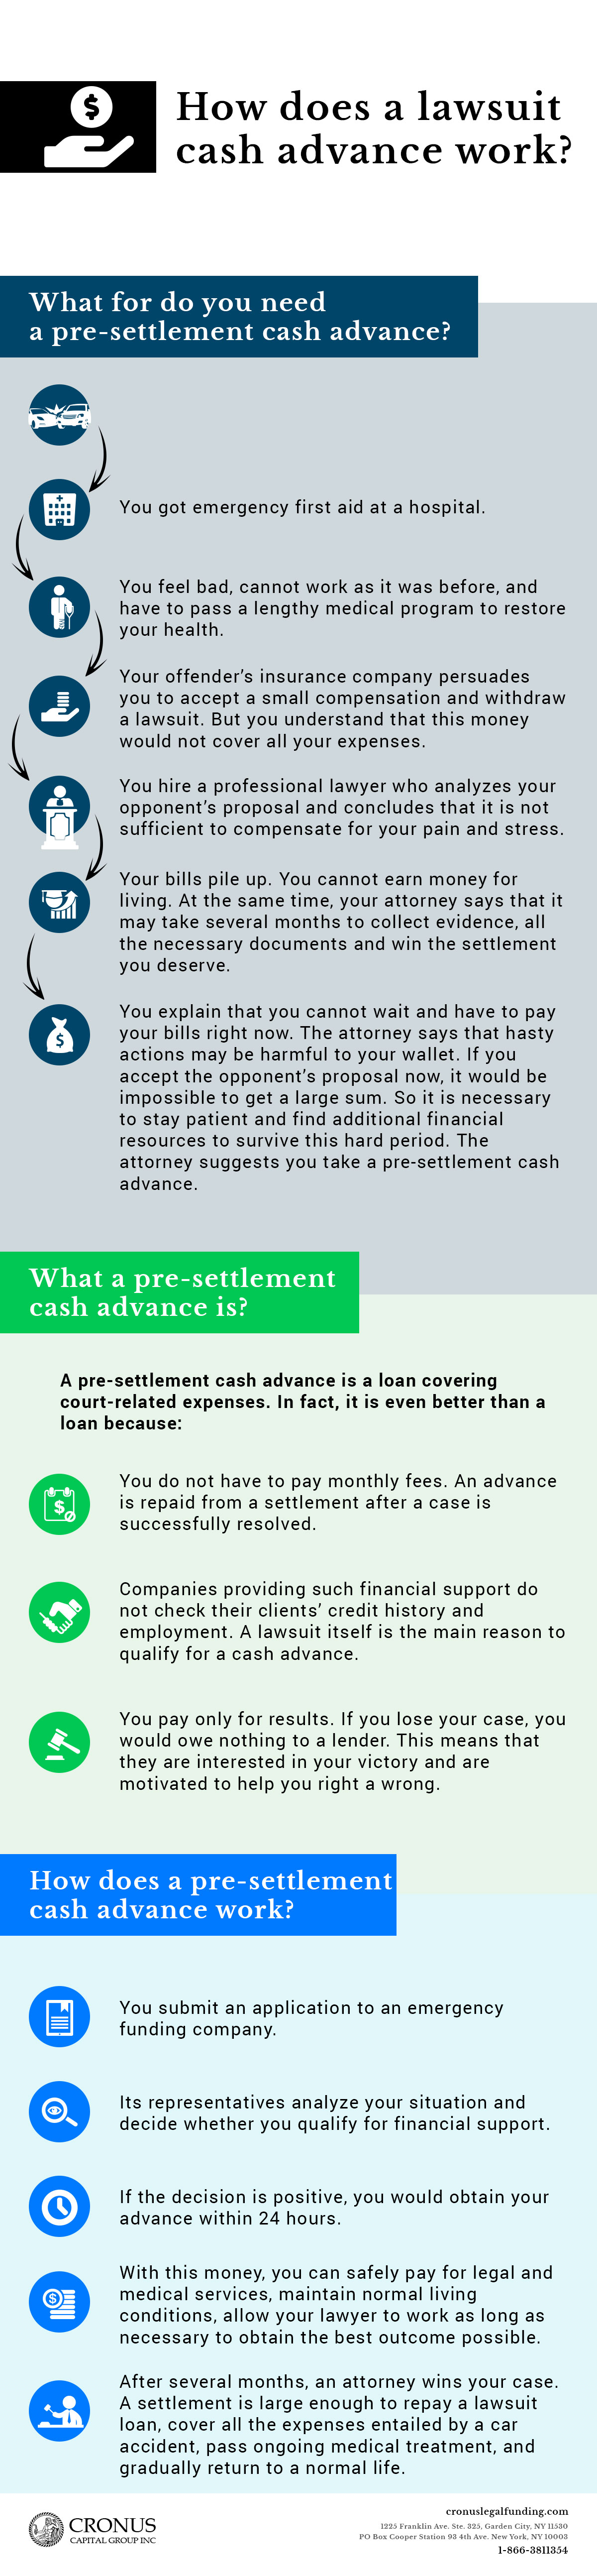 Infographics: How does a lawsuit cash advance work